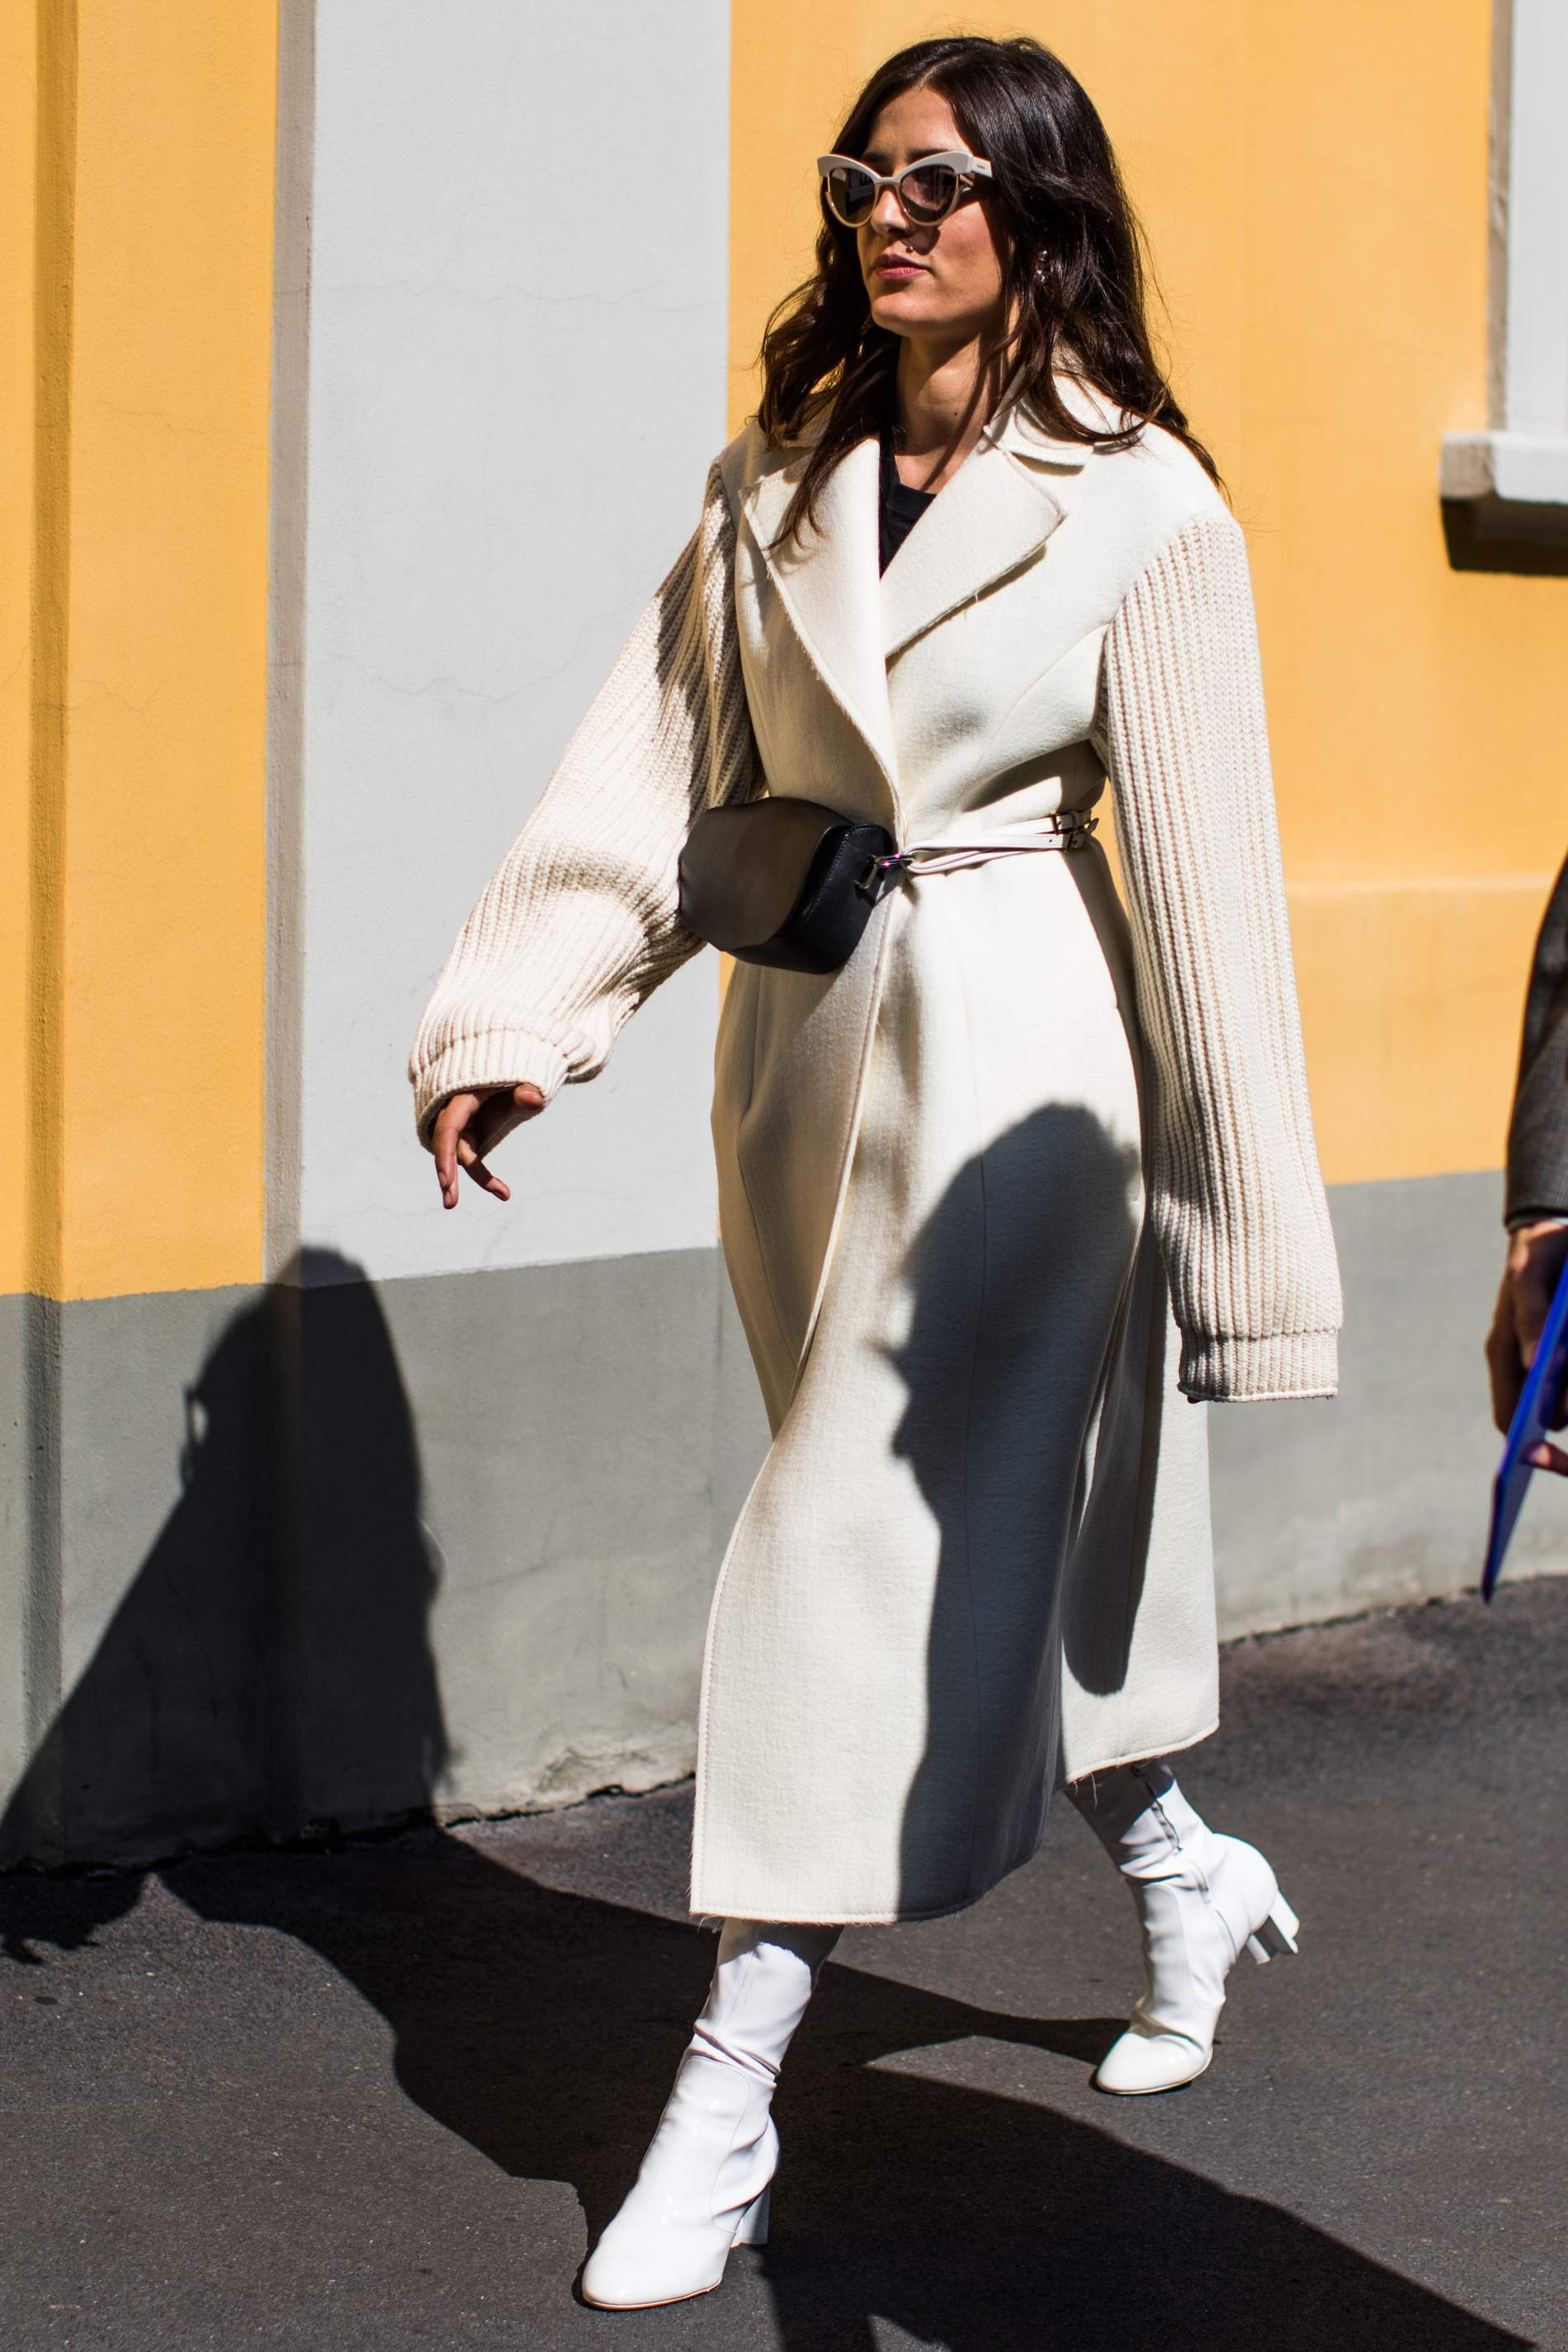 white-jacket-coat-black-bag-fannypack-hairr-sun-white-shoe-boots-fall-winter-lunch.jpeg